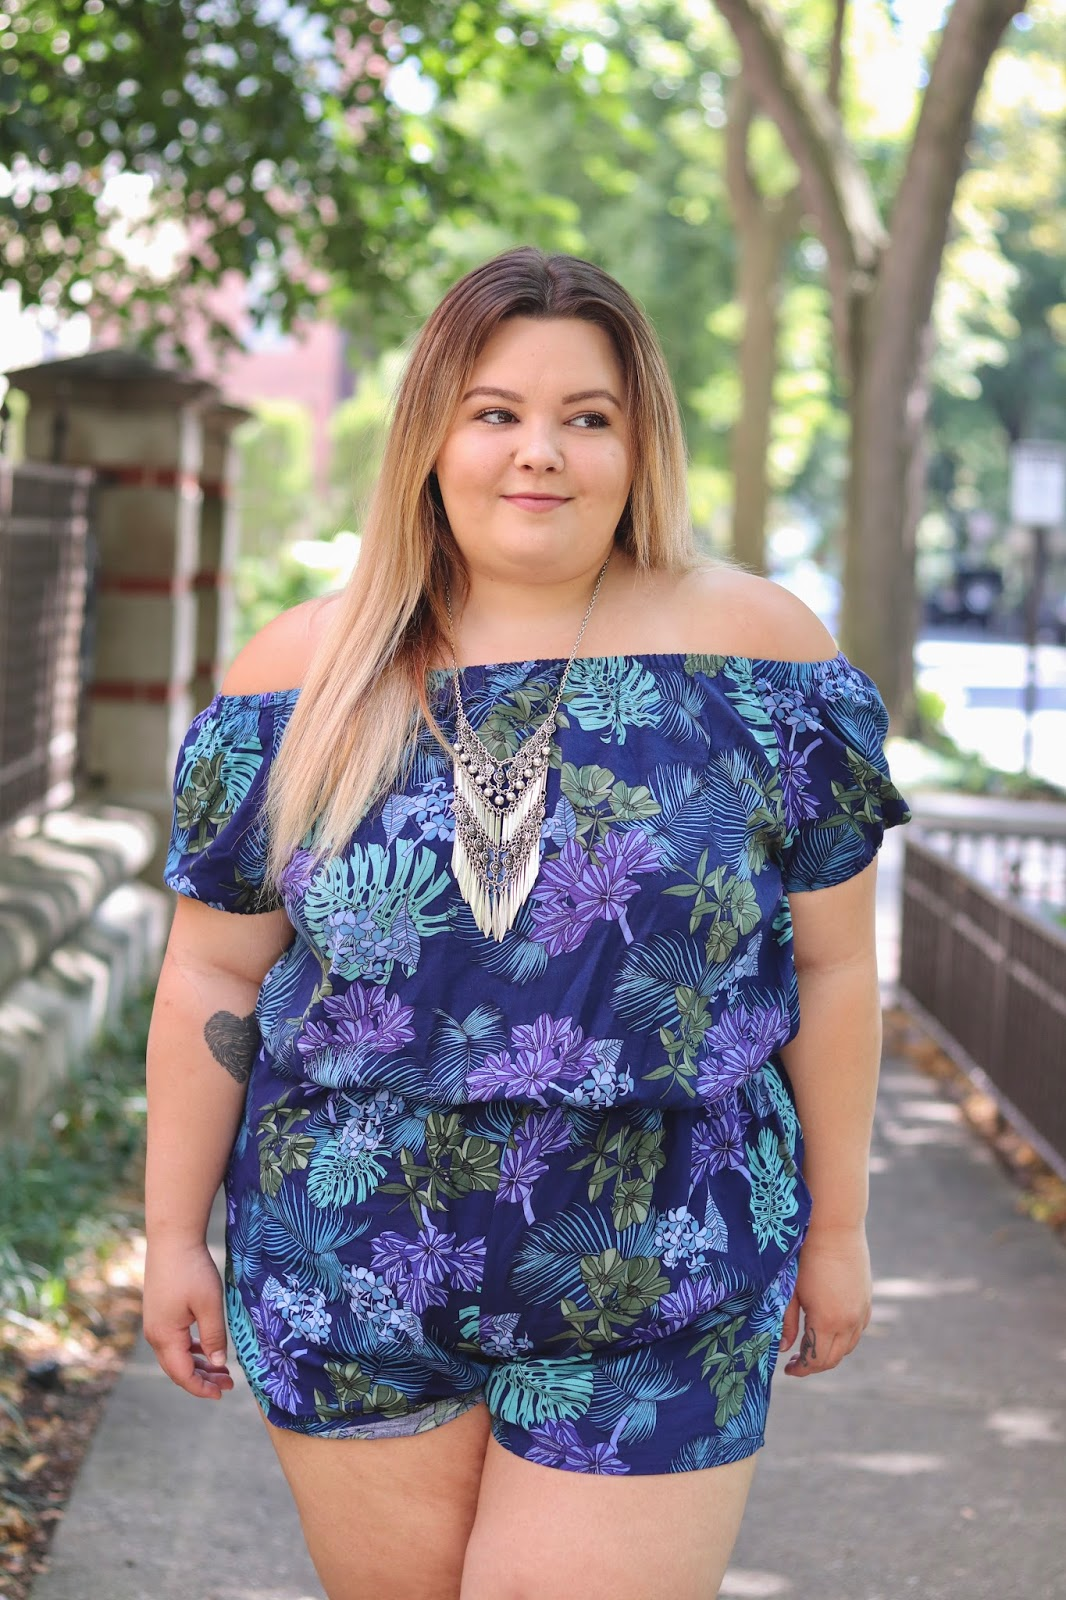 natalie in the city, natalie craig, plus size fashion blogger, plus size fashion, affordable plus size clothing, city chic, macys, curves and confidence, confident plus size women, off your beauty standards, embrace my curves, plus size model, Chicago fashion